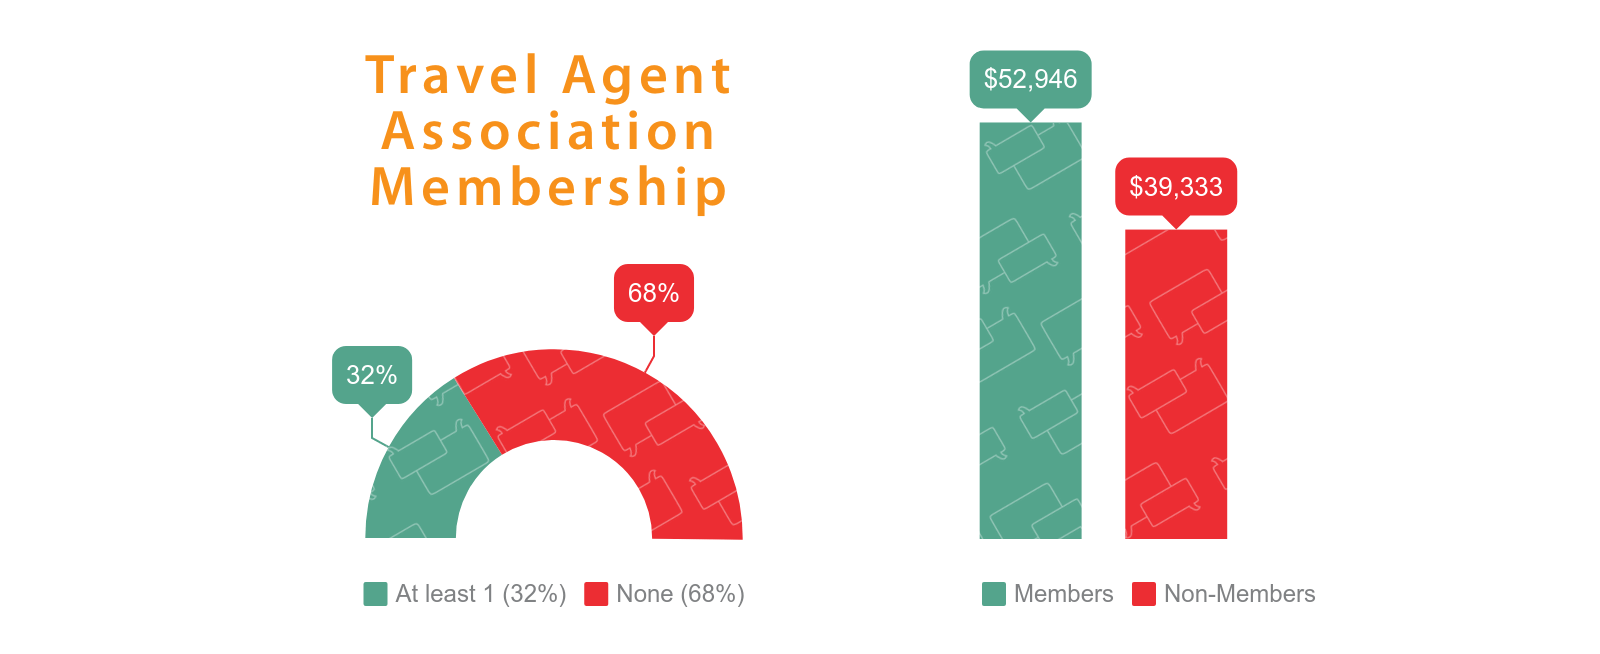 Travel Agent Association Membership and Income 2019